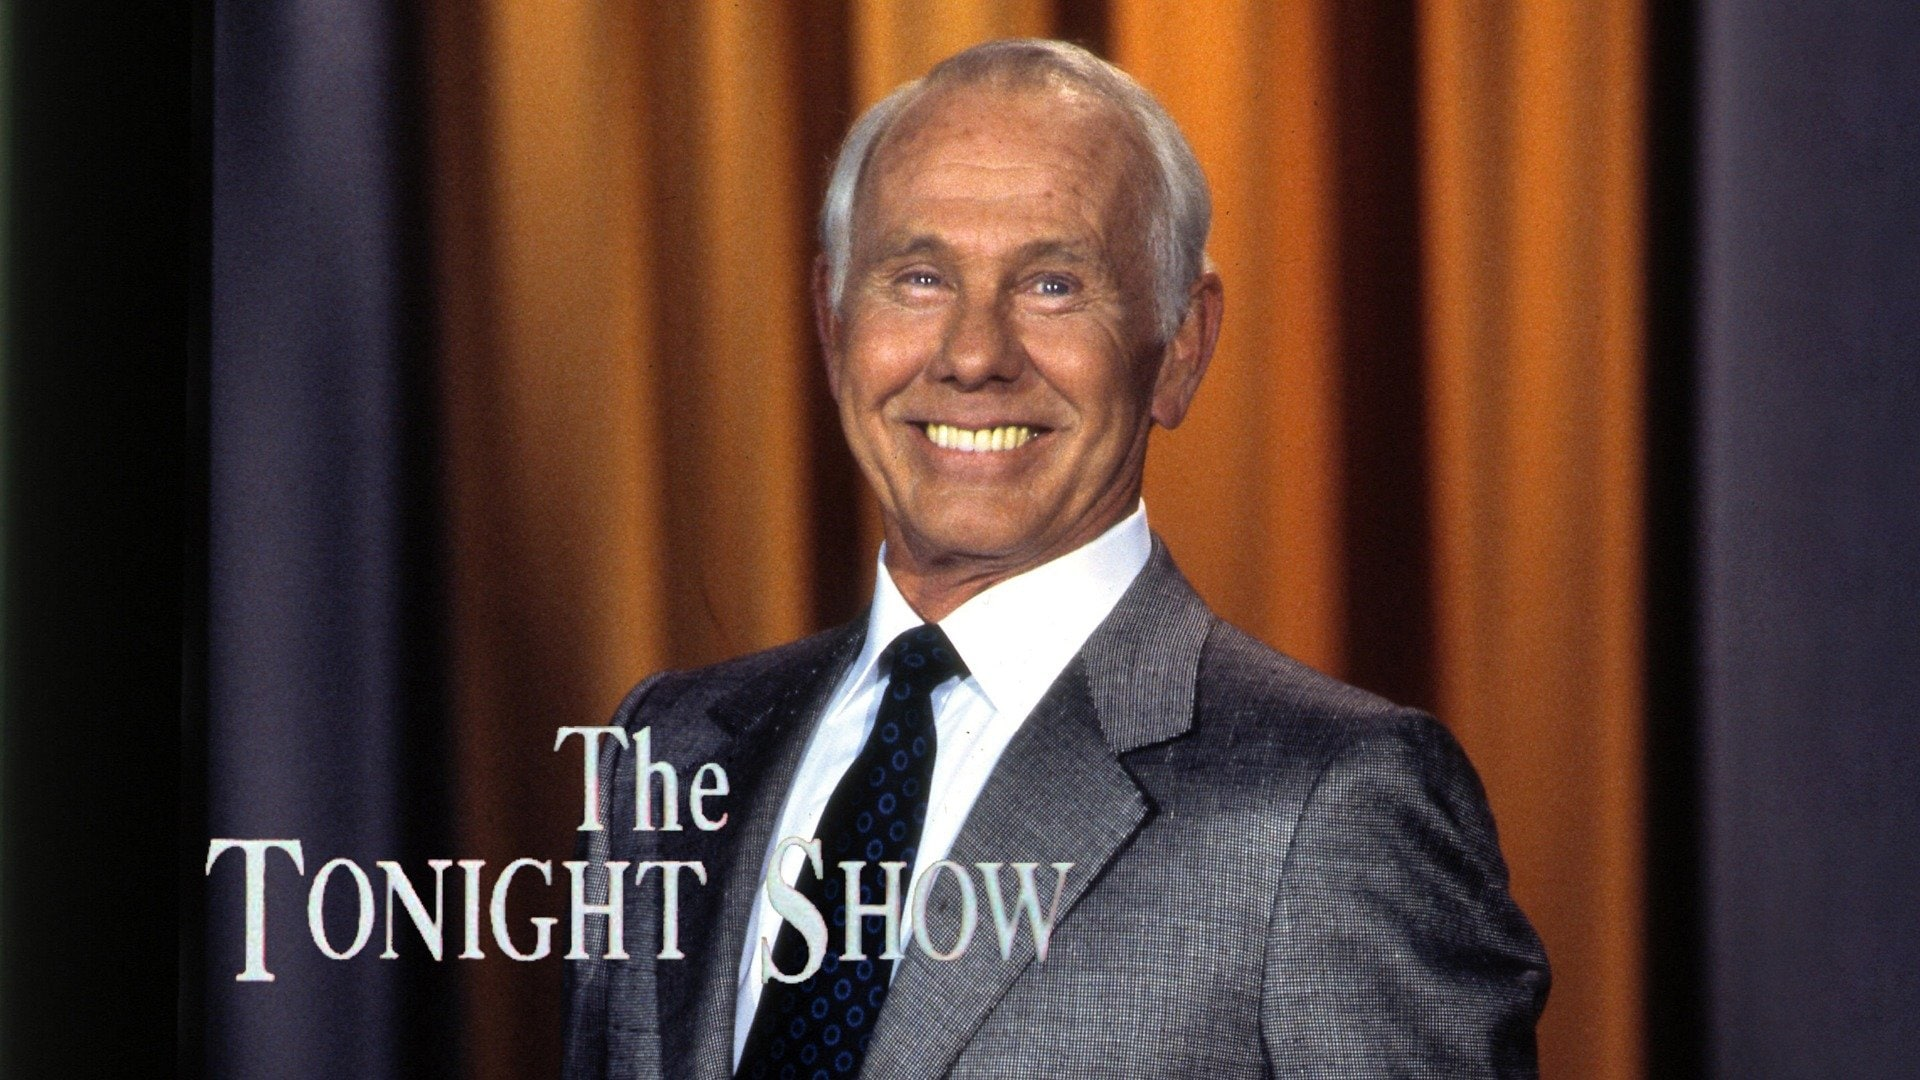 The Johnny Carson Show: Comic Legends Of The '80s - Eddie Murphy (1/1/82)